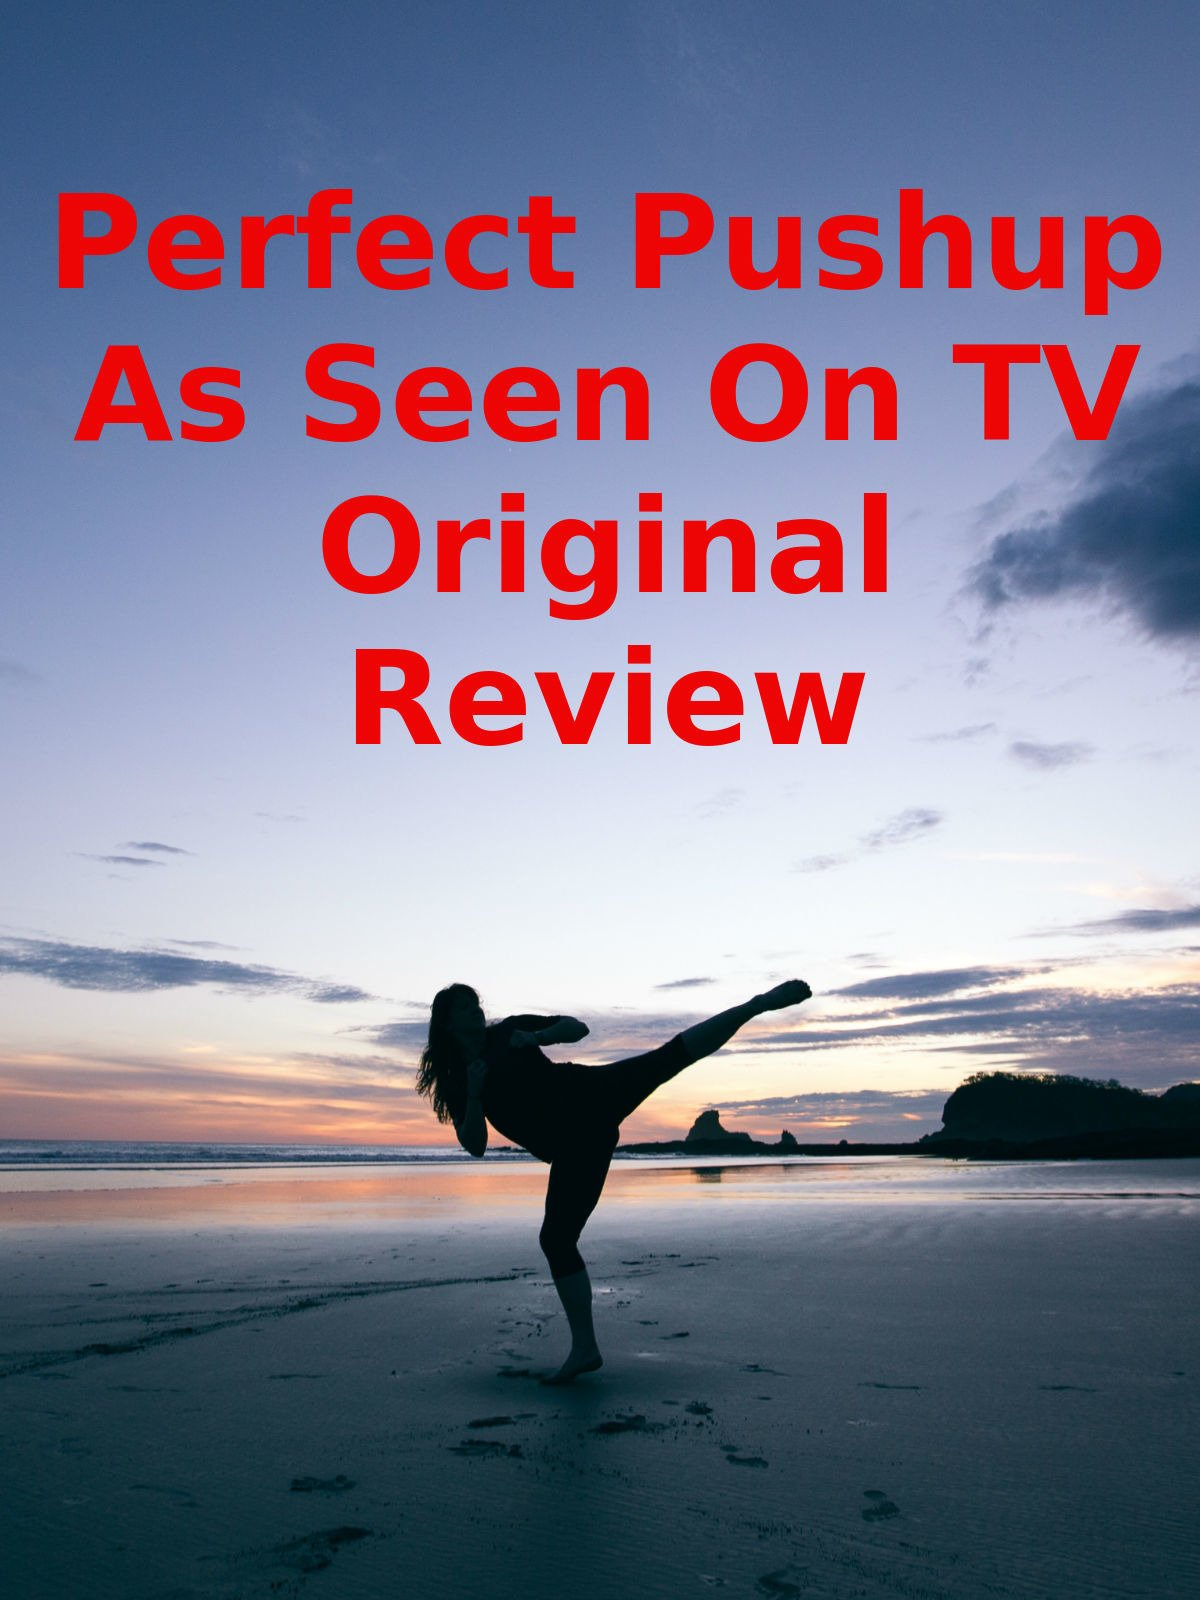 Review: Perfect Pushup As Seen On TV Original Review on Amazon Prime Video UK